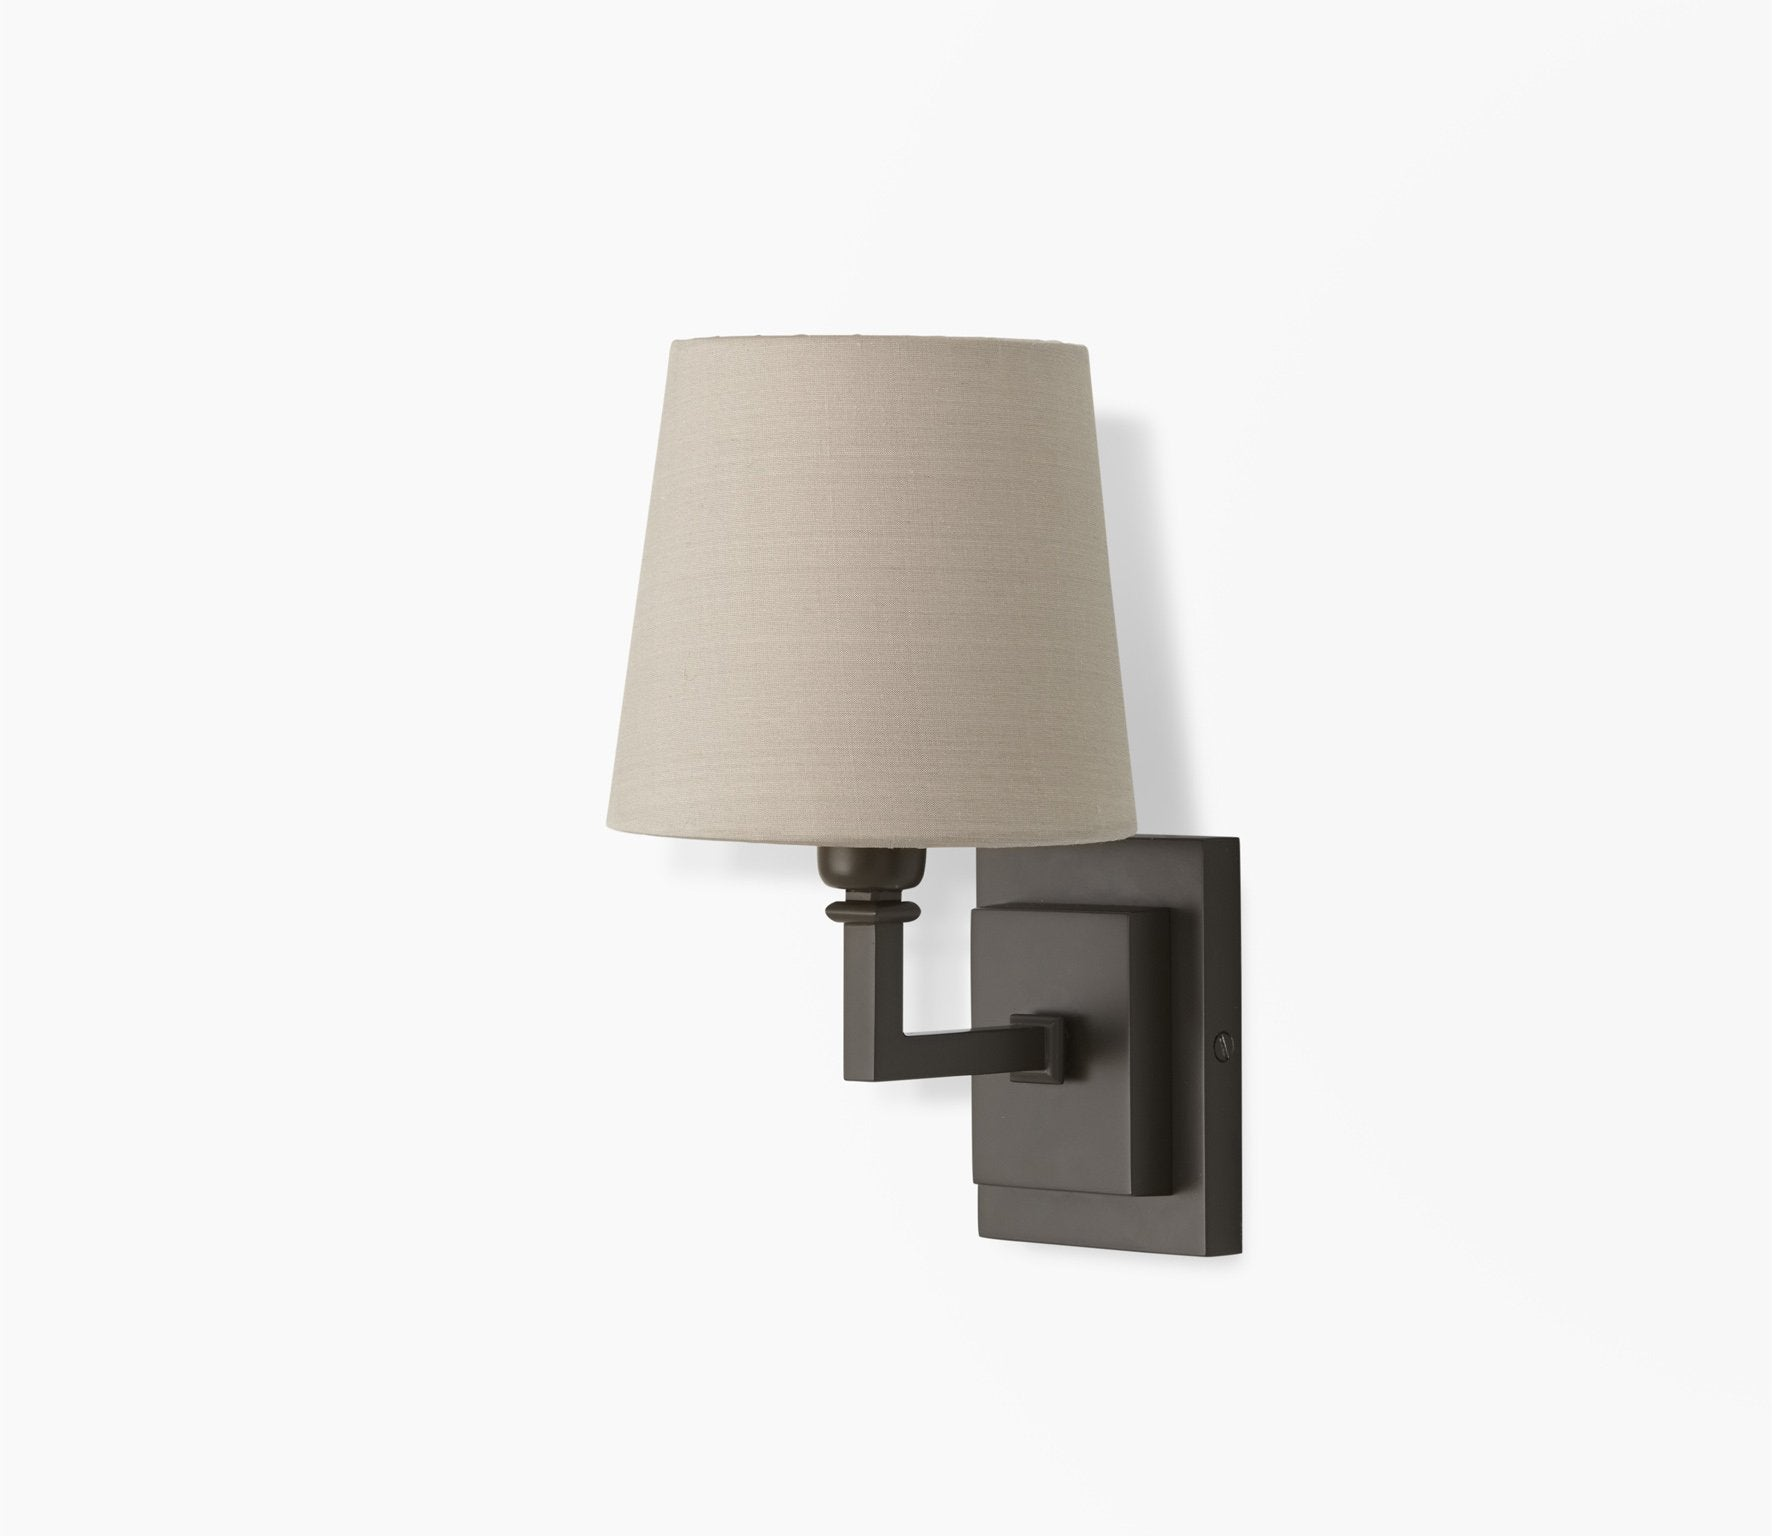 Parker Wall Light with Drum Shade Product Image 1